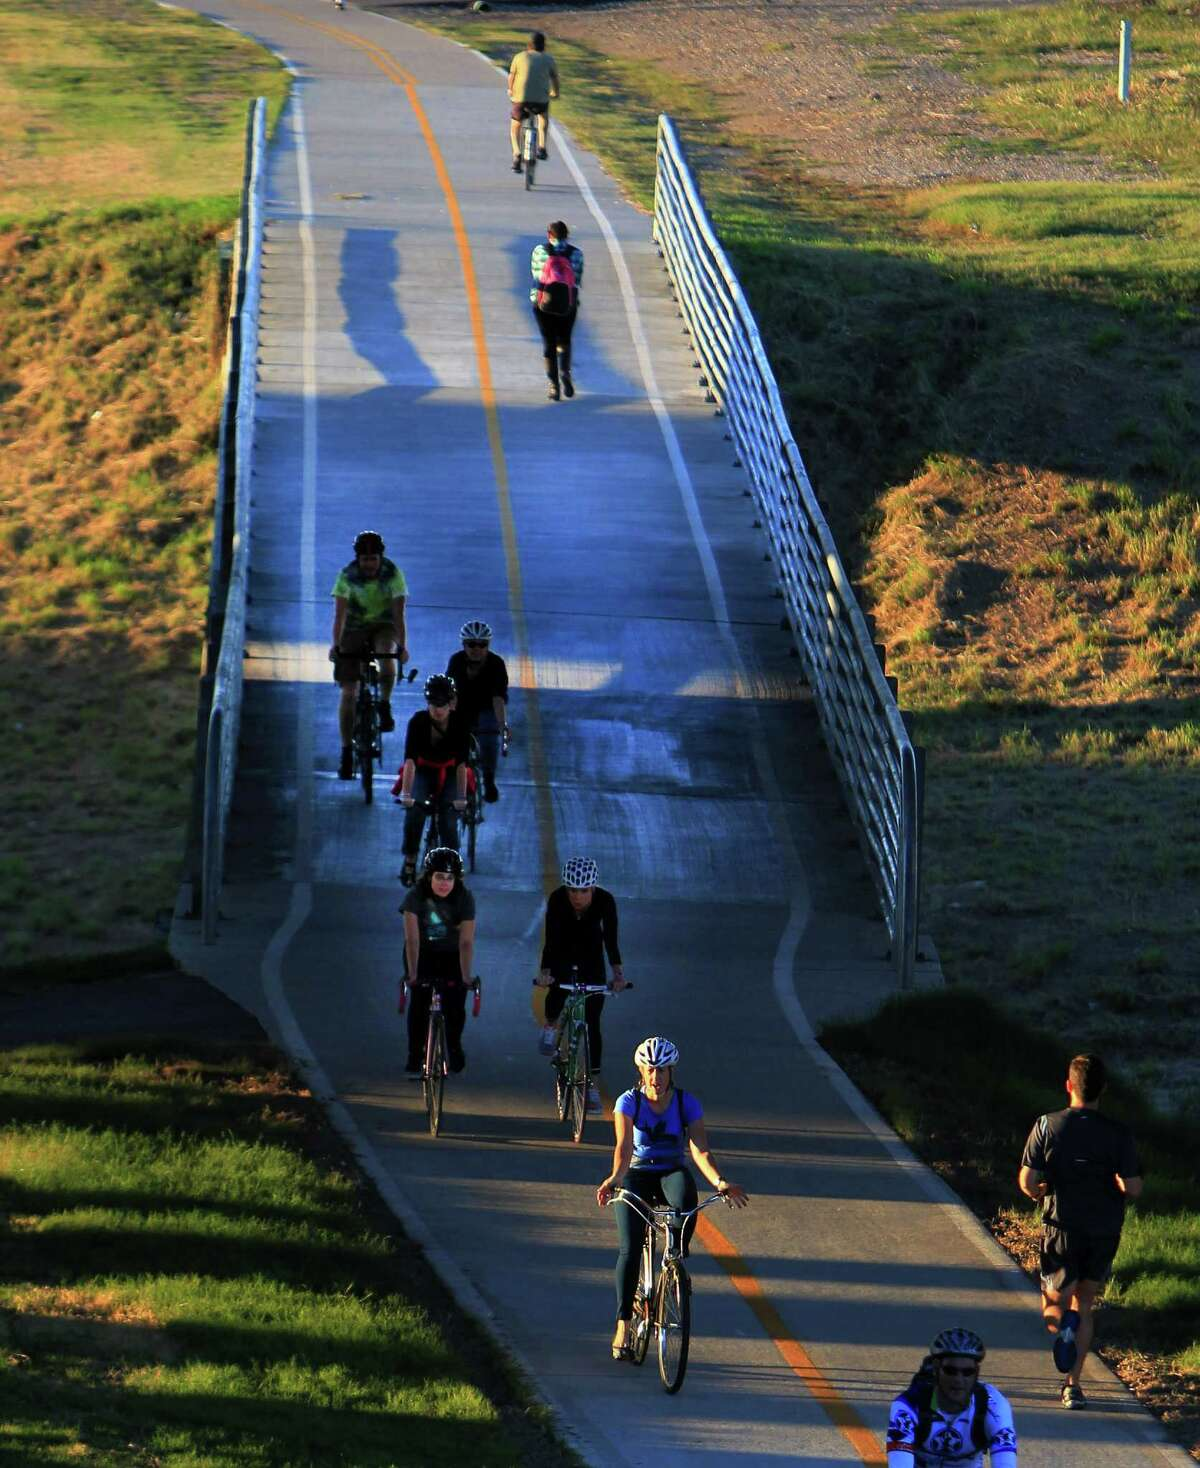 Tuesday's crisp, sunny weather lured cyclists and joggers onto the Heights Bike Trail ride over White Oak Bayou and under Interstate 10 near downtown.